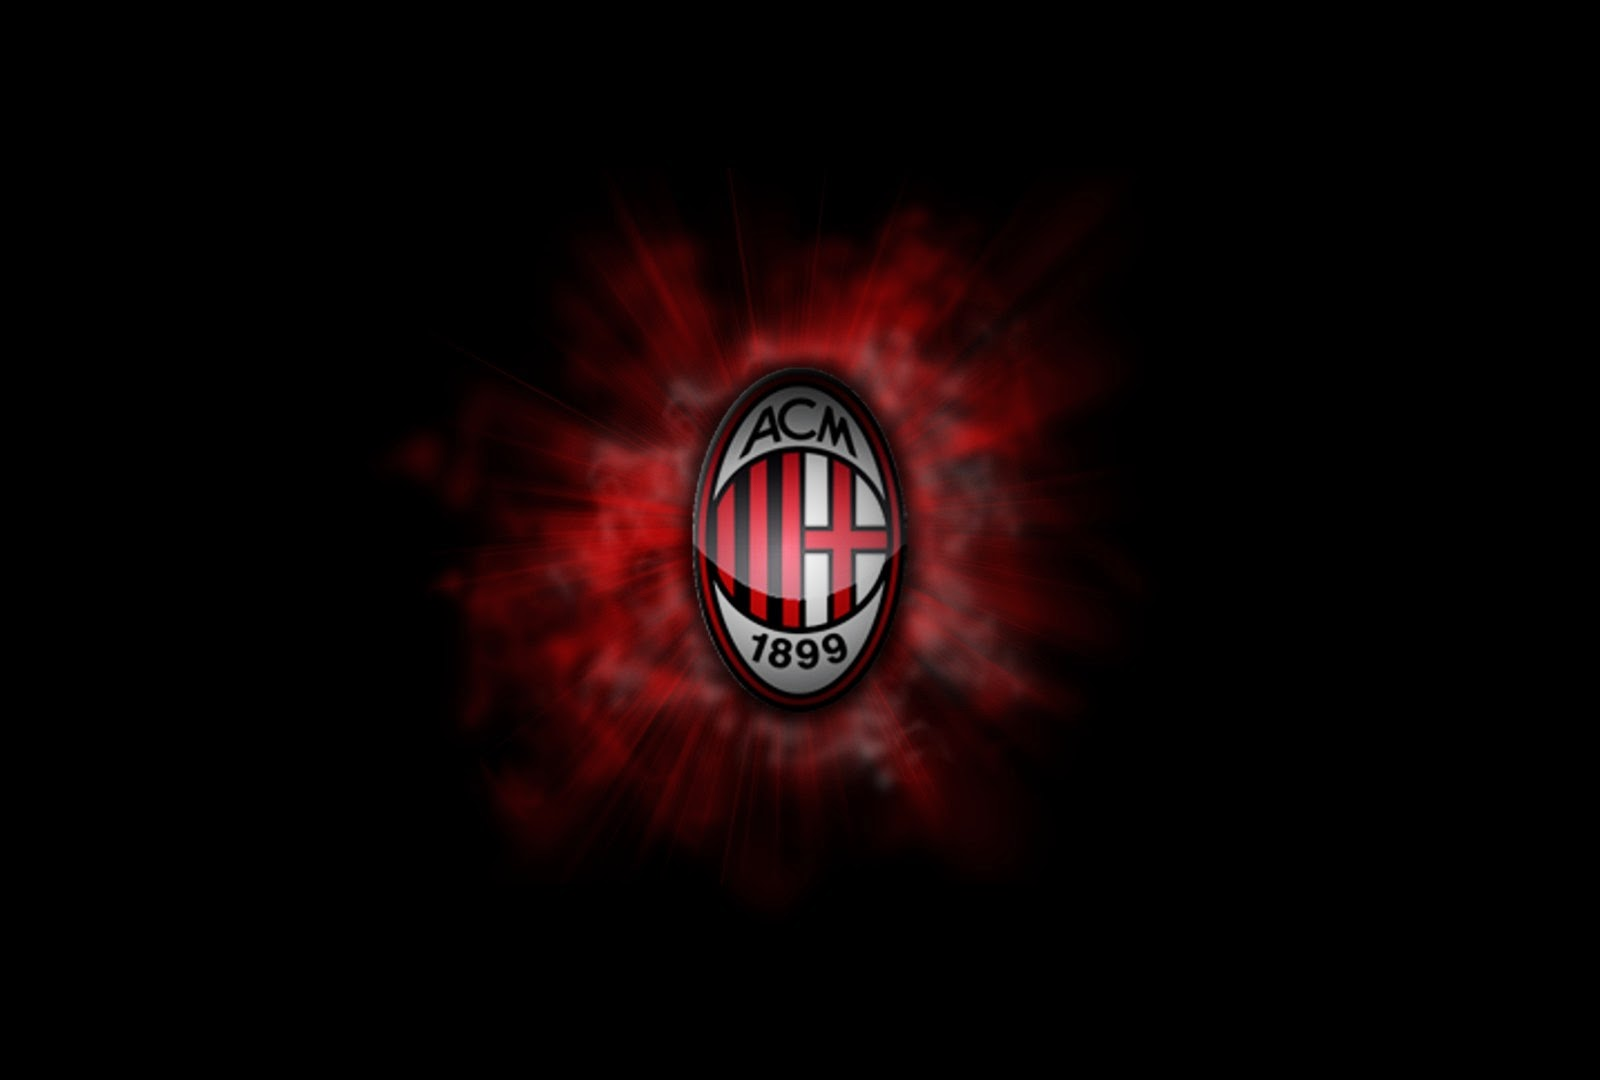 Hd wallpaper ac milan - Ac Milan Screensavers Inter Wallpapers